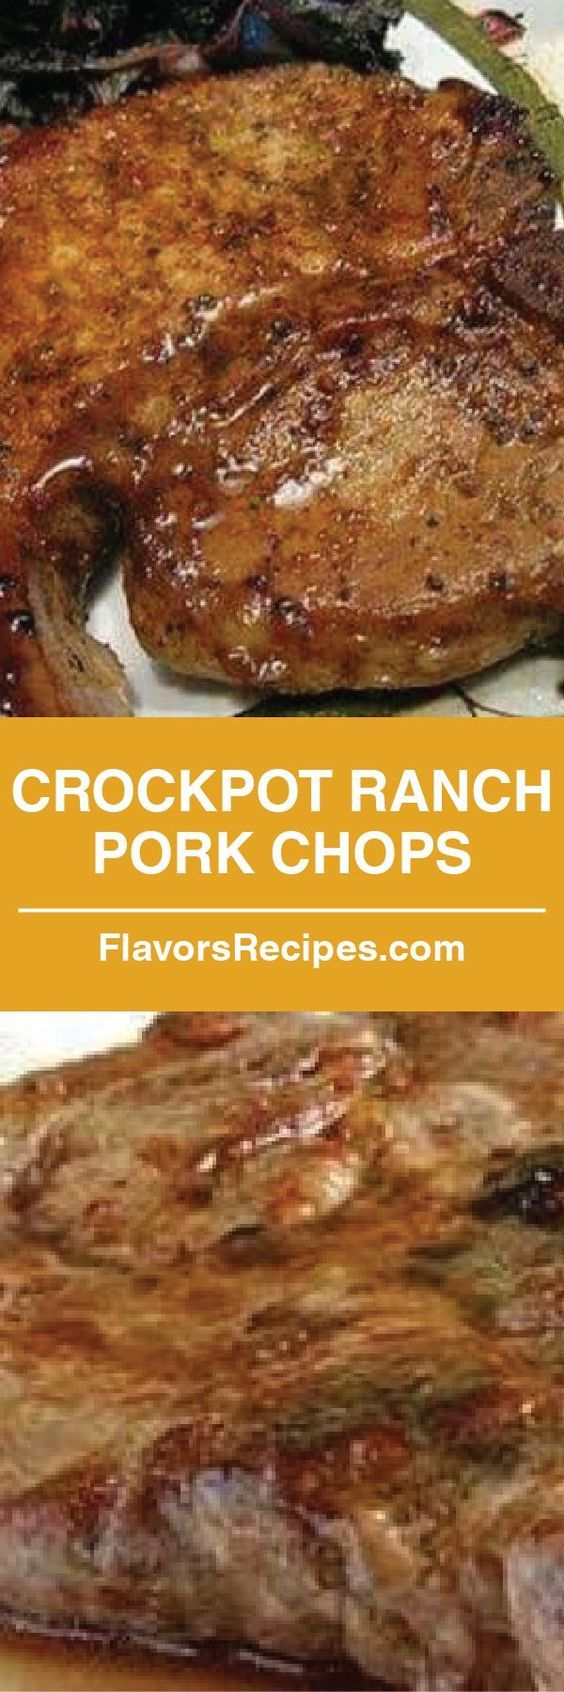 Crock-pot Ranch Pork Chops #dinnerrecipesforfamilymaindishes